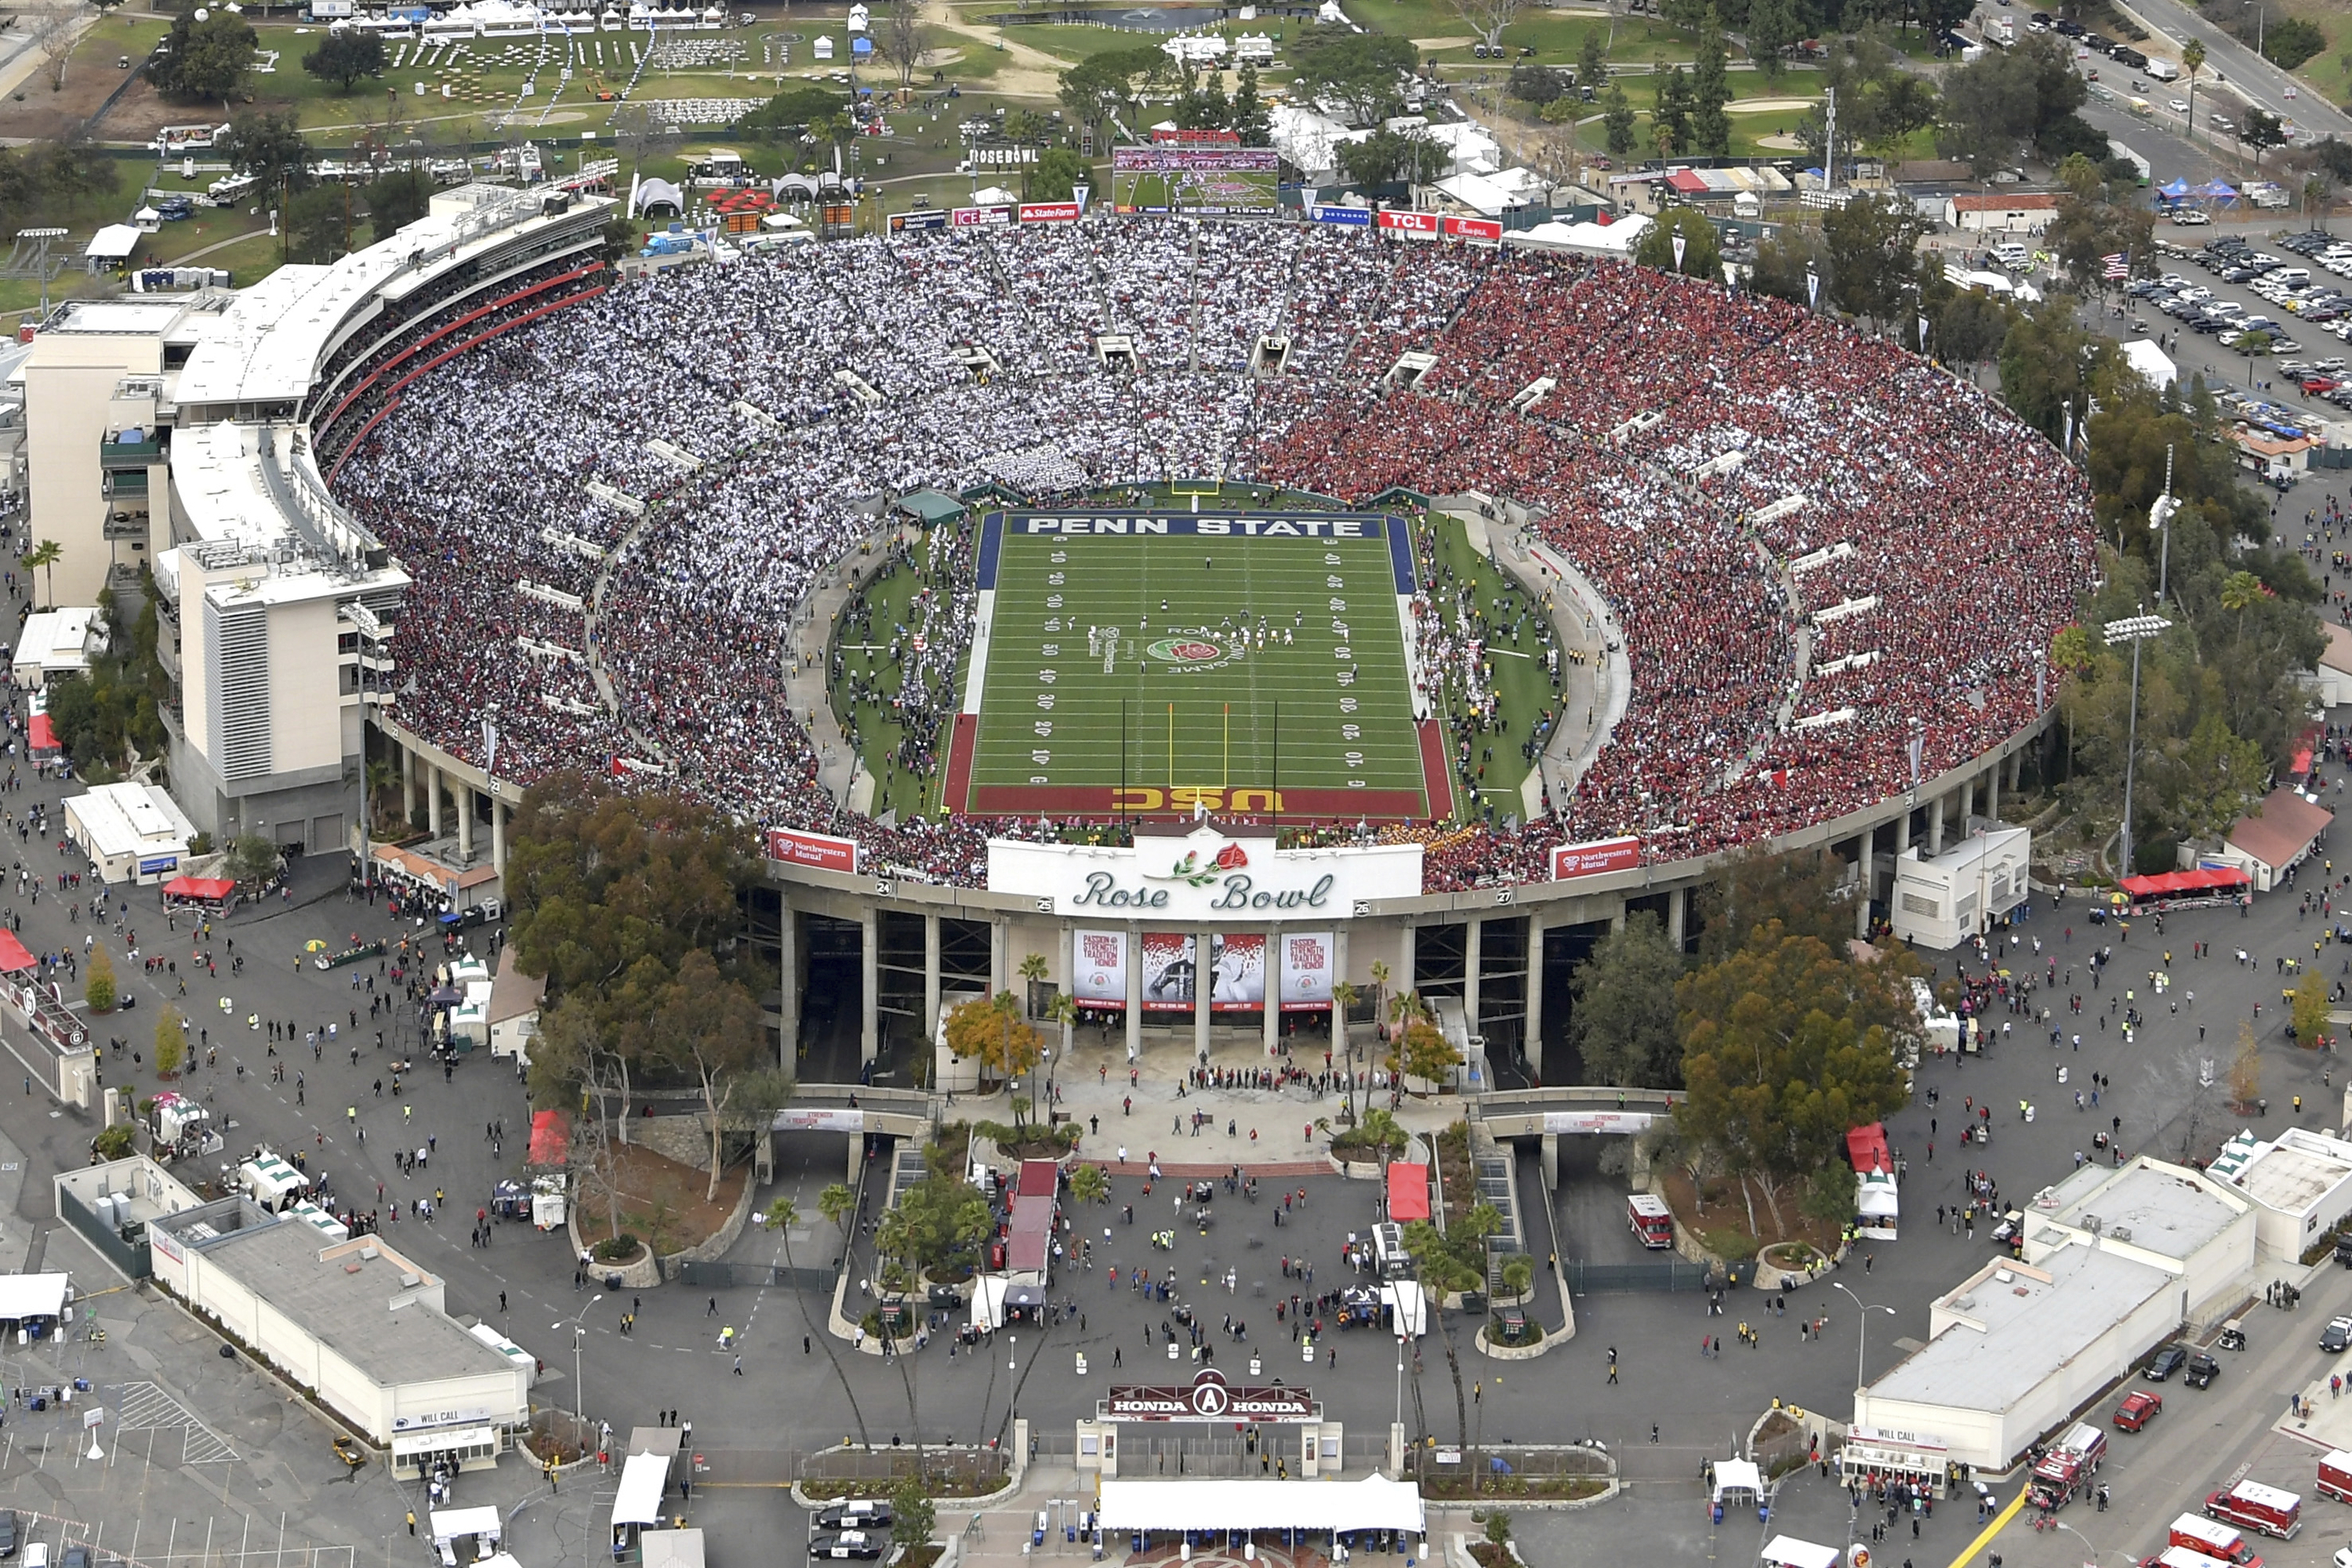 An aerial view of the Rose Bowl stadium prior to the Rose Bowl NCAA college football game between Southern California and Penn State on Monday, Jan. 2, 2017, in Pasadena, Calif. (The Tournament of Roses via AP Pool)